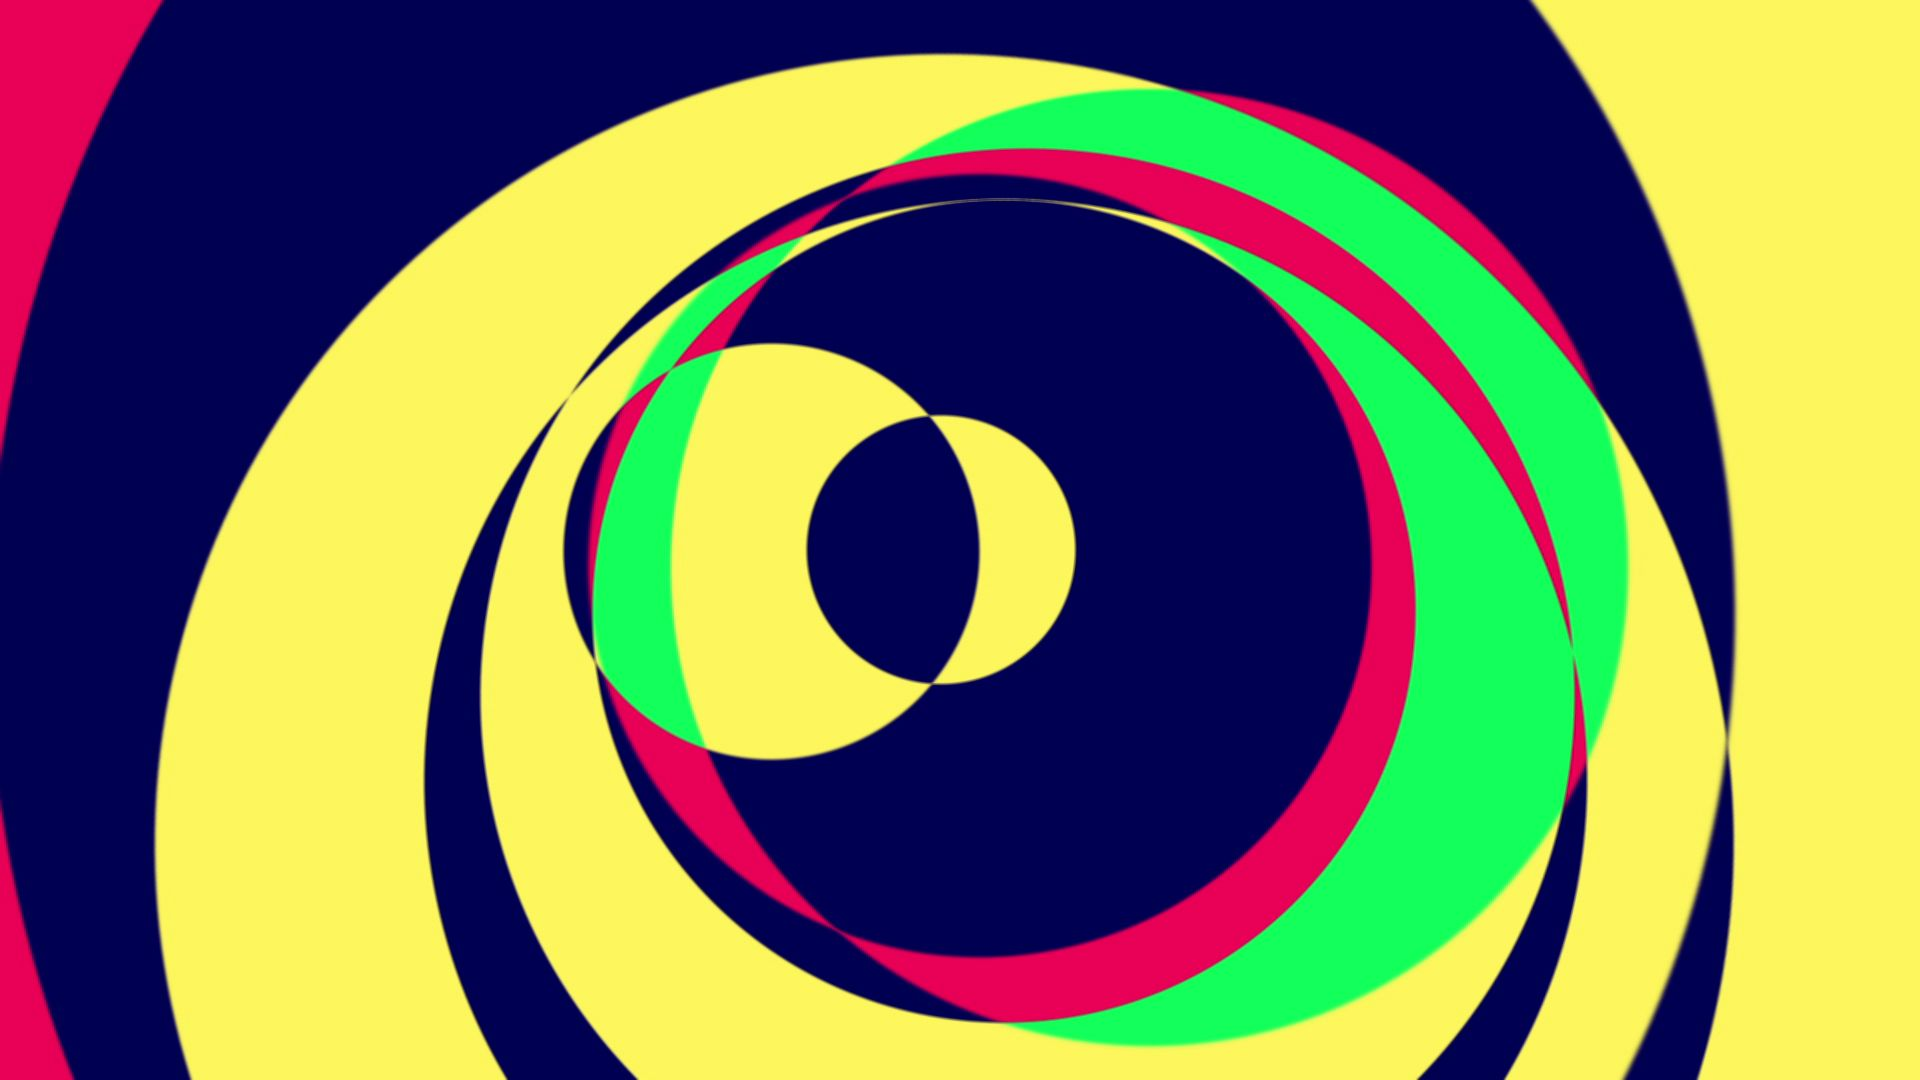 Psychedelic Circles 1 | downloops – Creative Motion Backgrounds